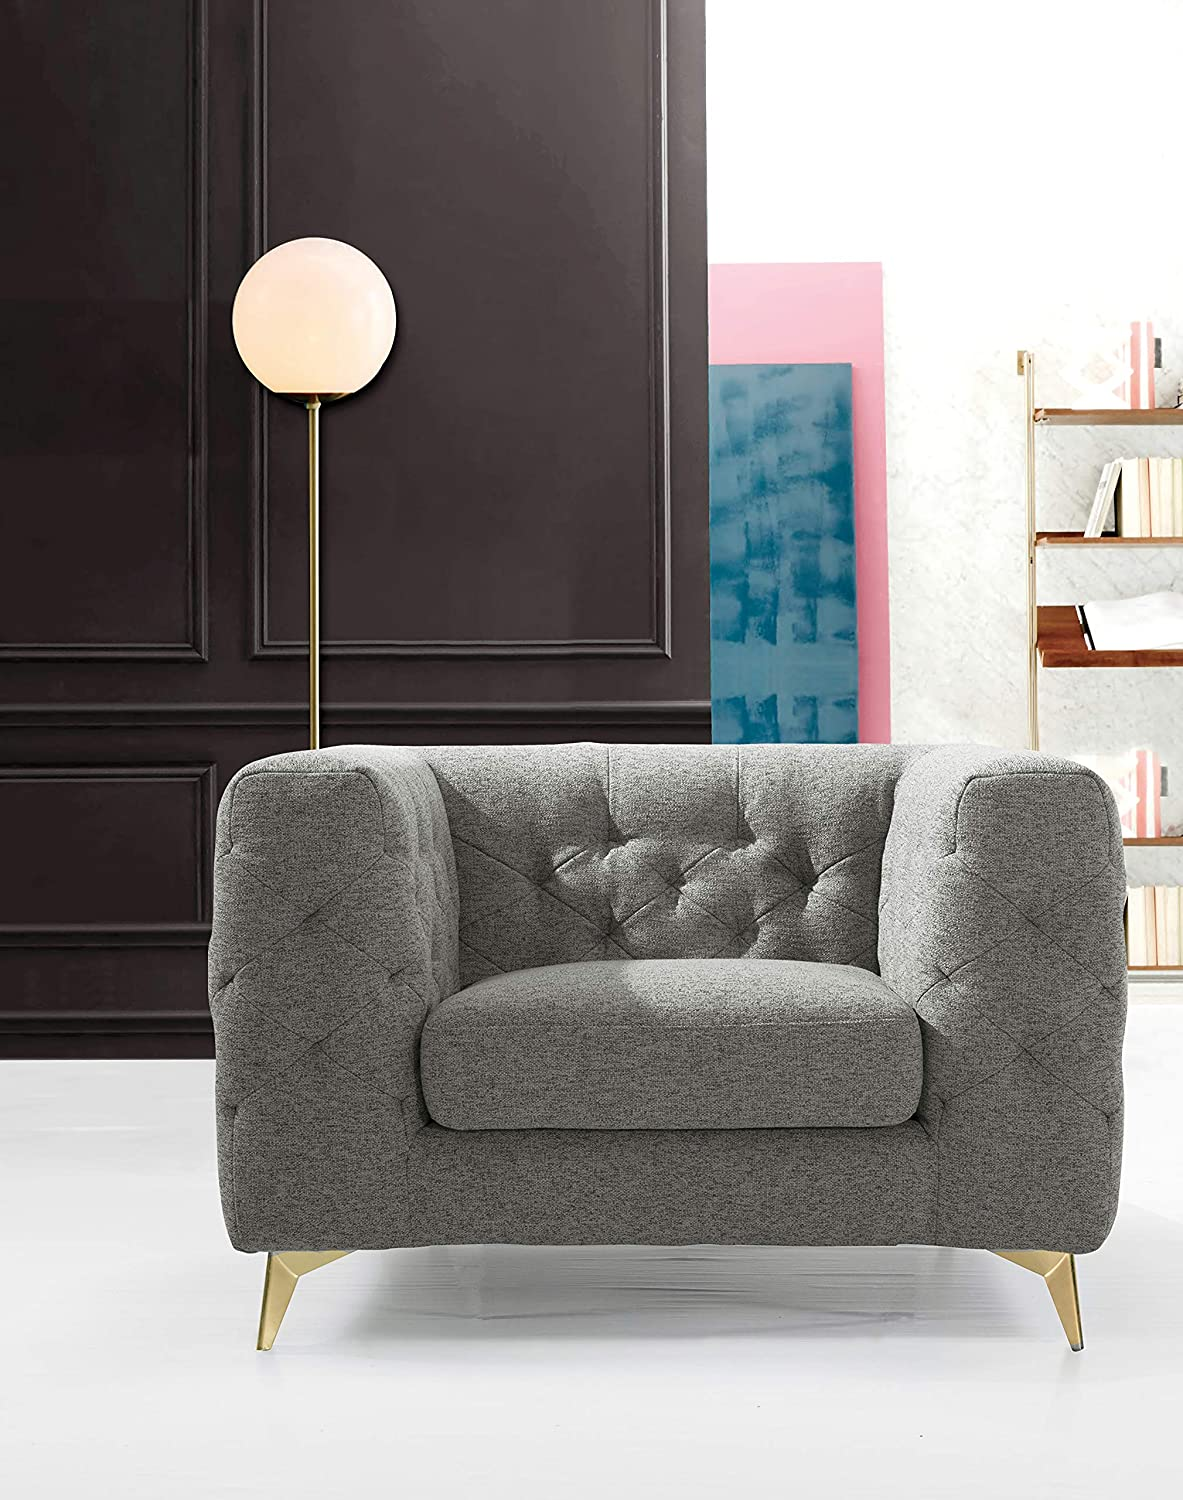 Iconic Home Soho Accent Club Chair Linen Textured Upholstery Plush Tufted Shelter Arm Solid Gold Tone Metal Legs Modern Transitional, DARK GREY